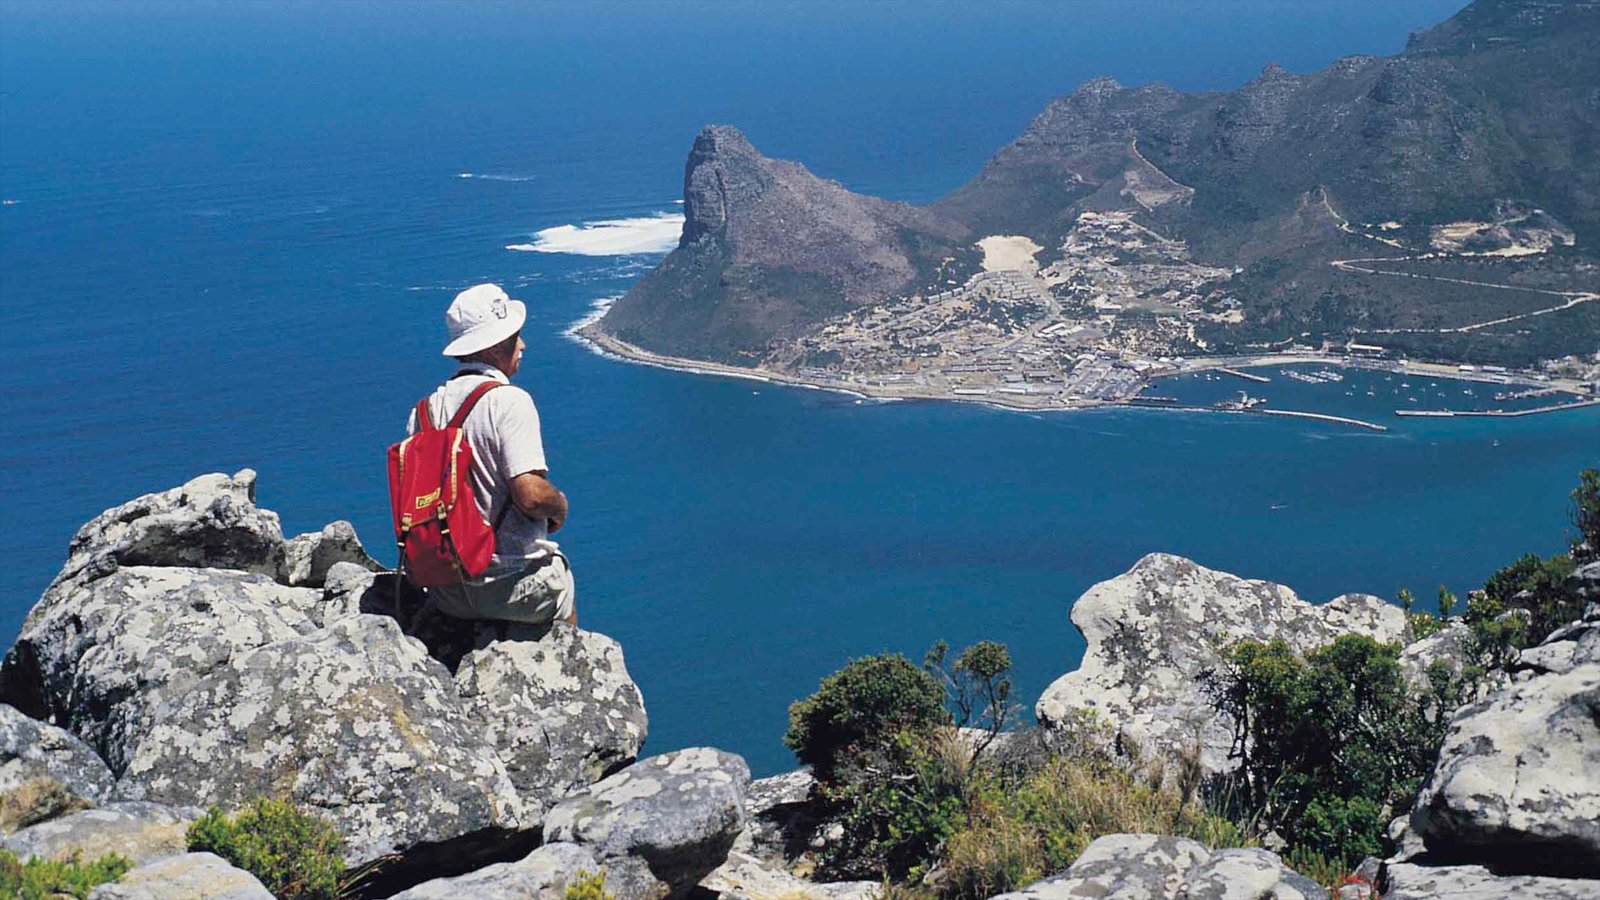 Hout Bay Beach which includes landscape views, hiking or walking and general coastal views